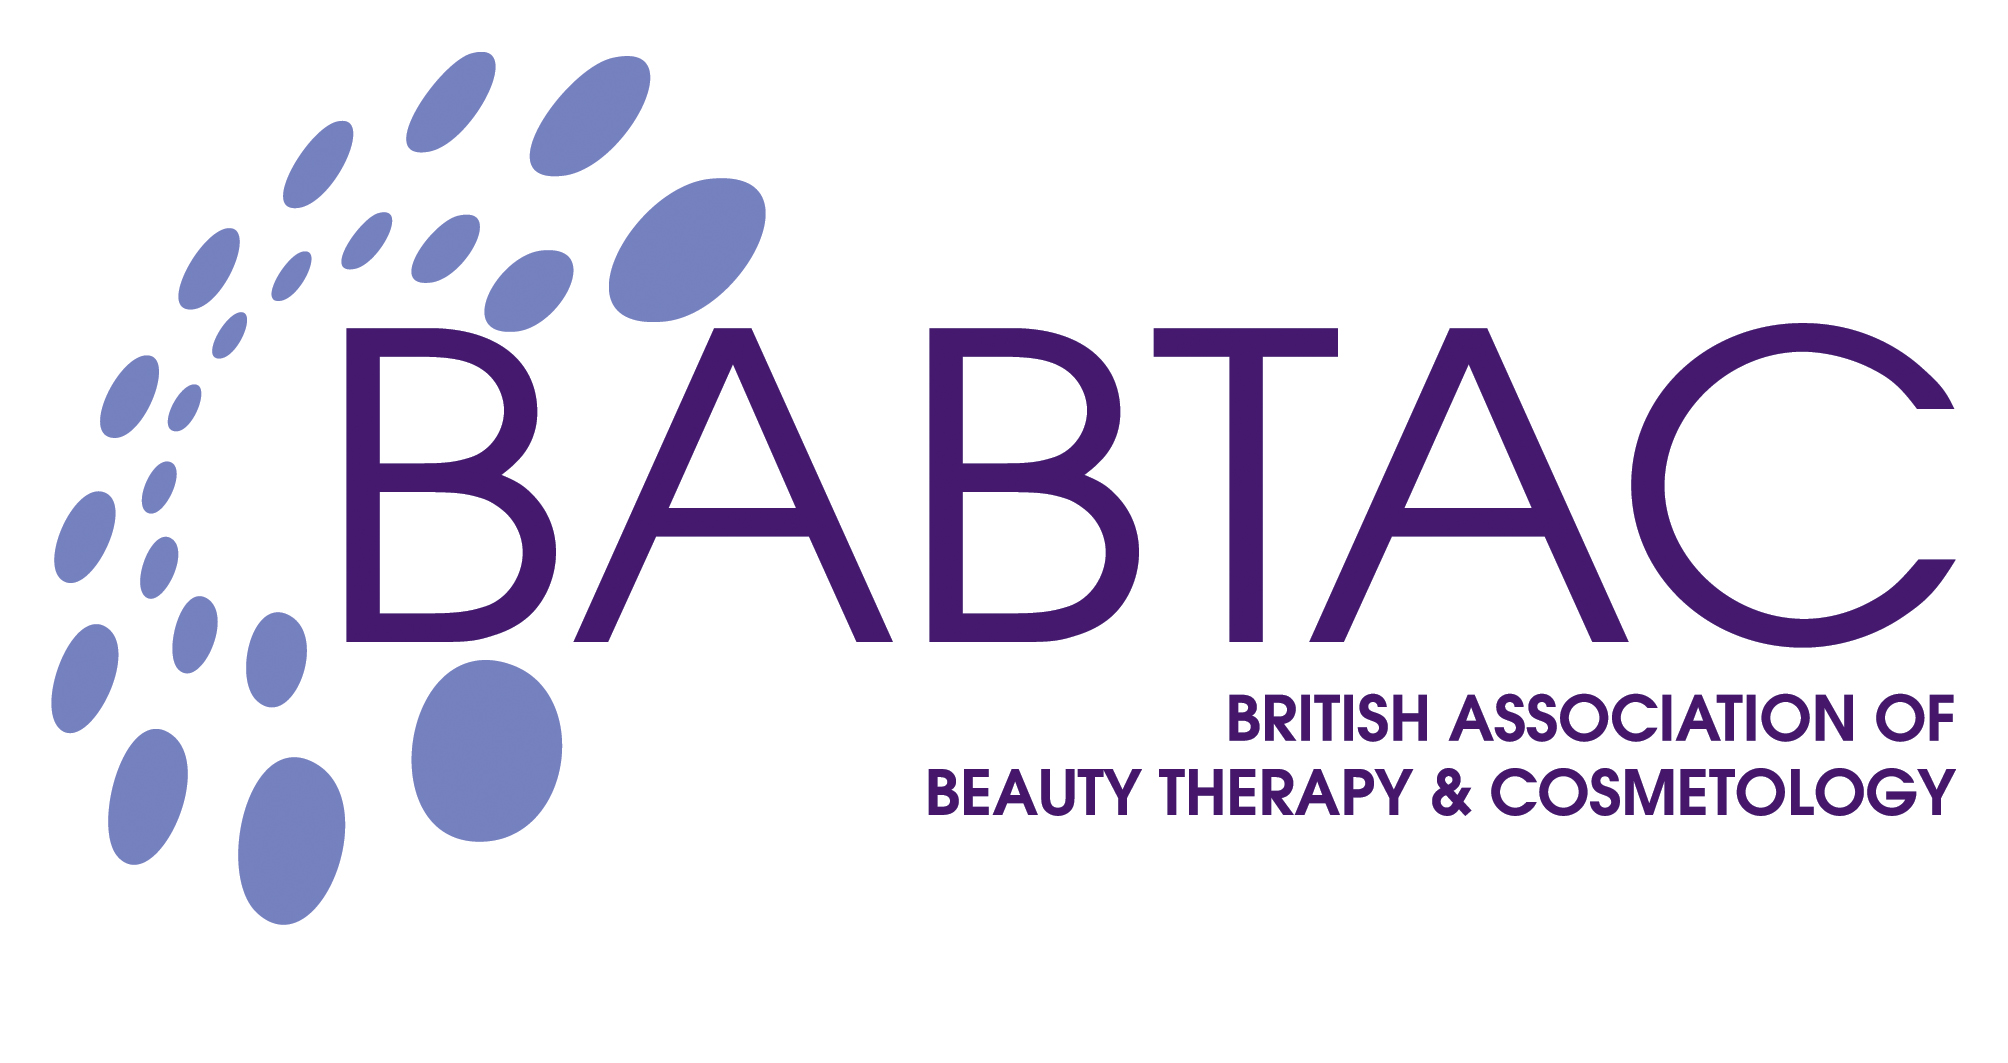 BABTAC British Association of Beauty Therapy and Cosmetology